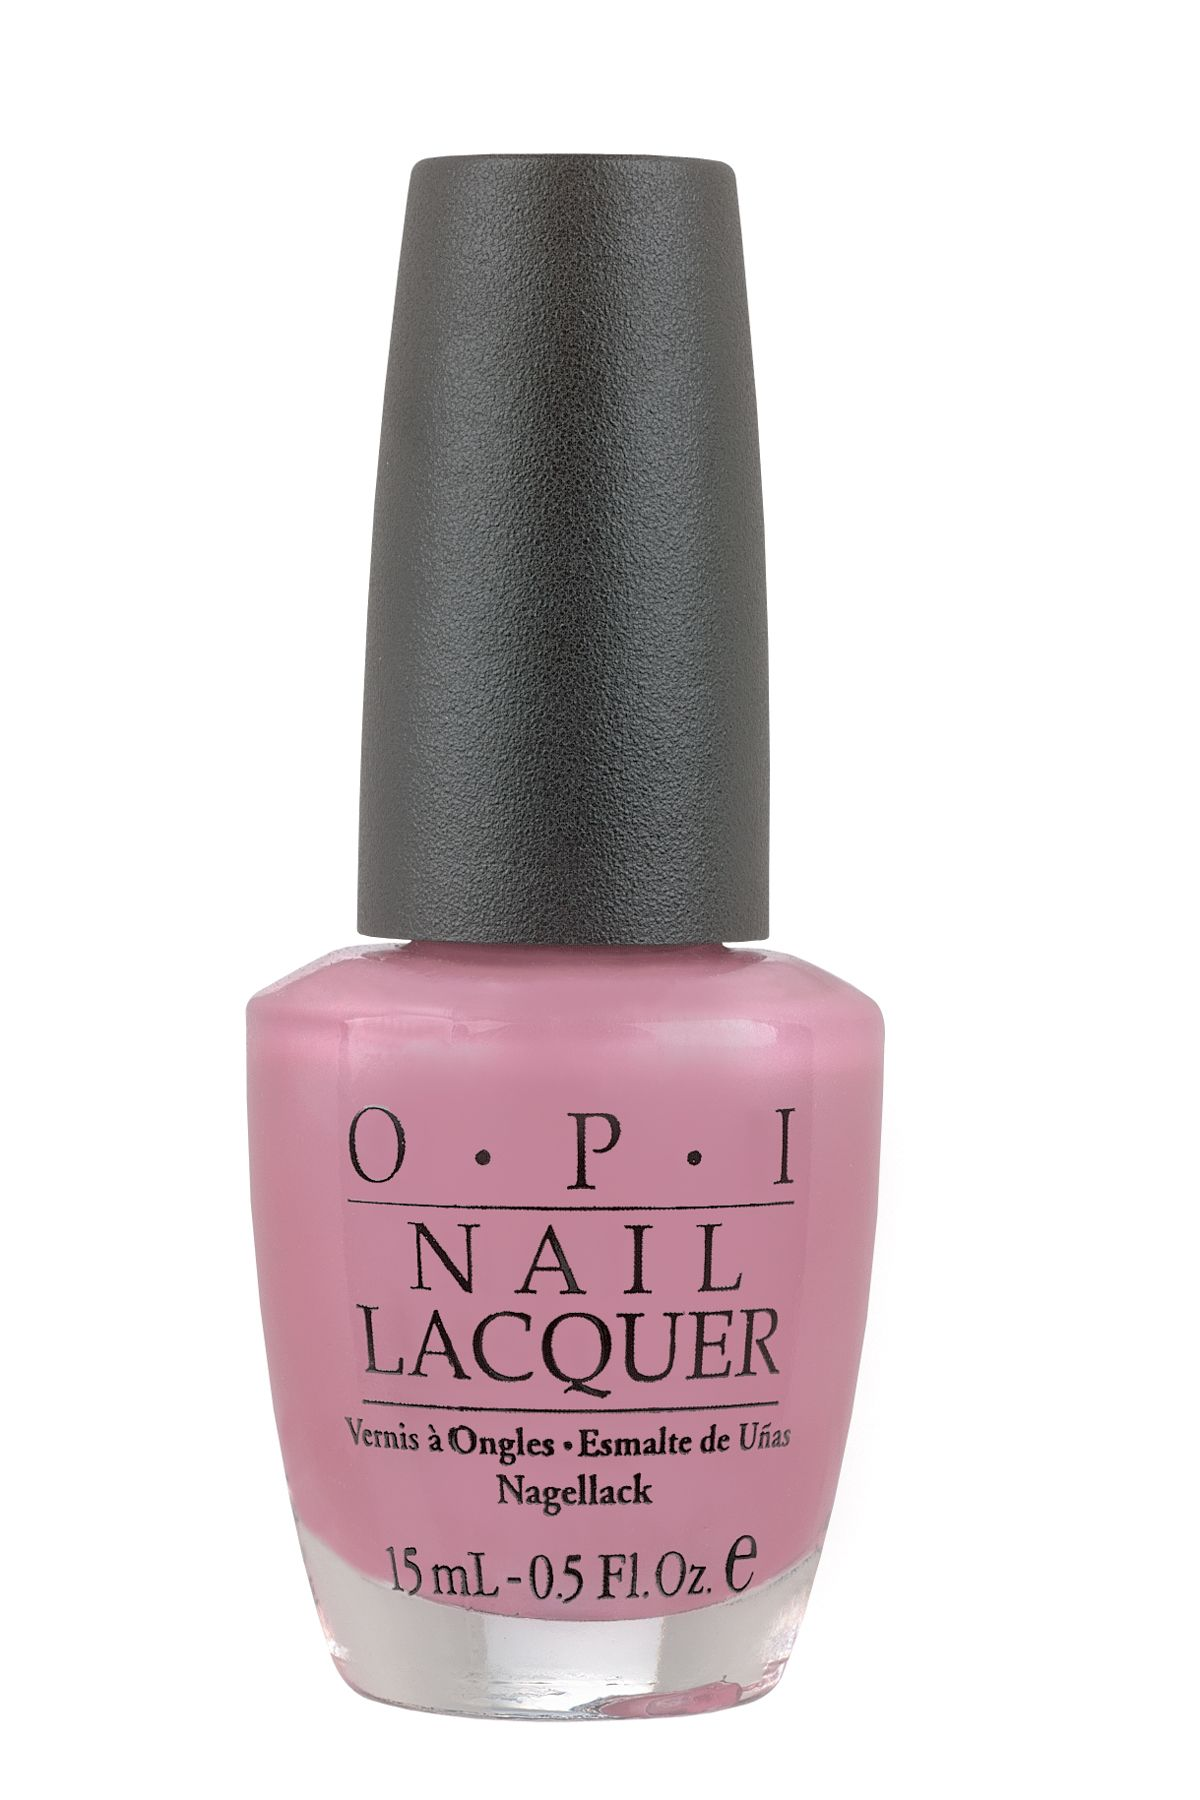 OPI nail lacquer matched to Tria limited edition Peony